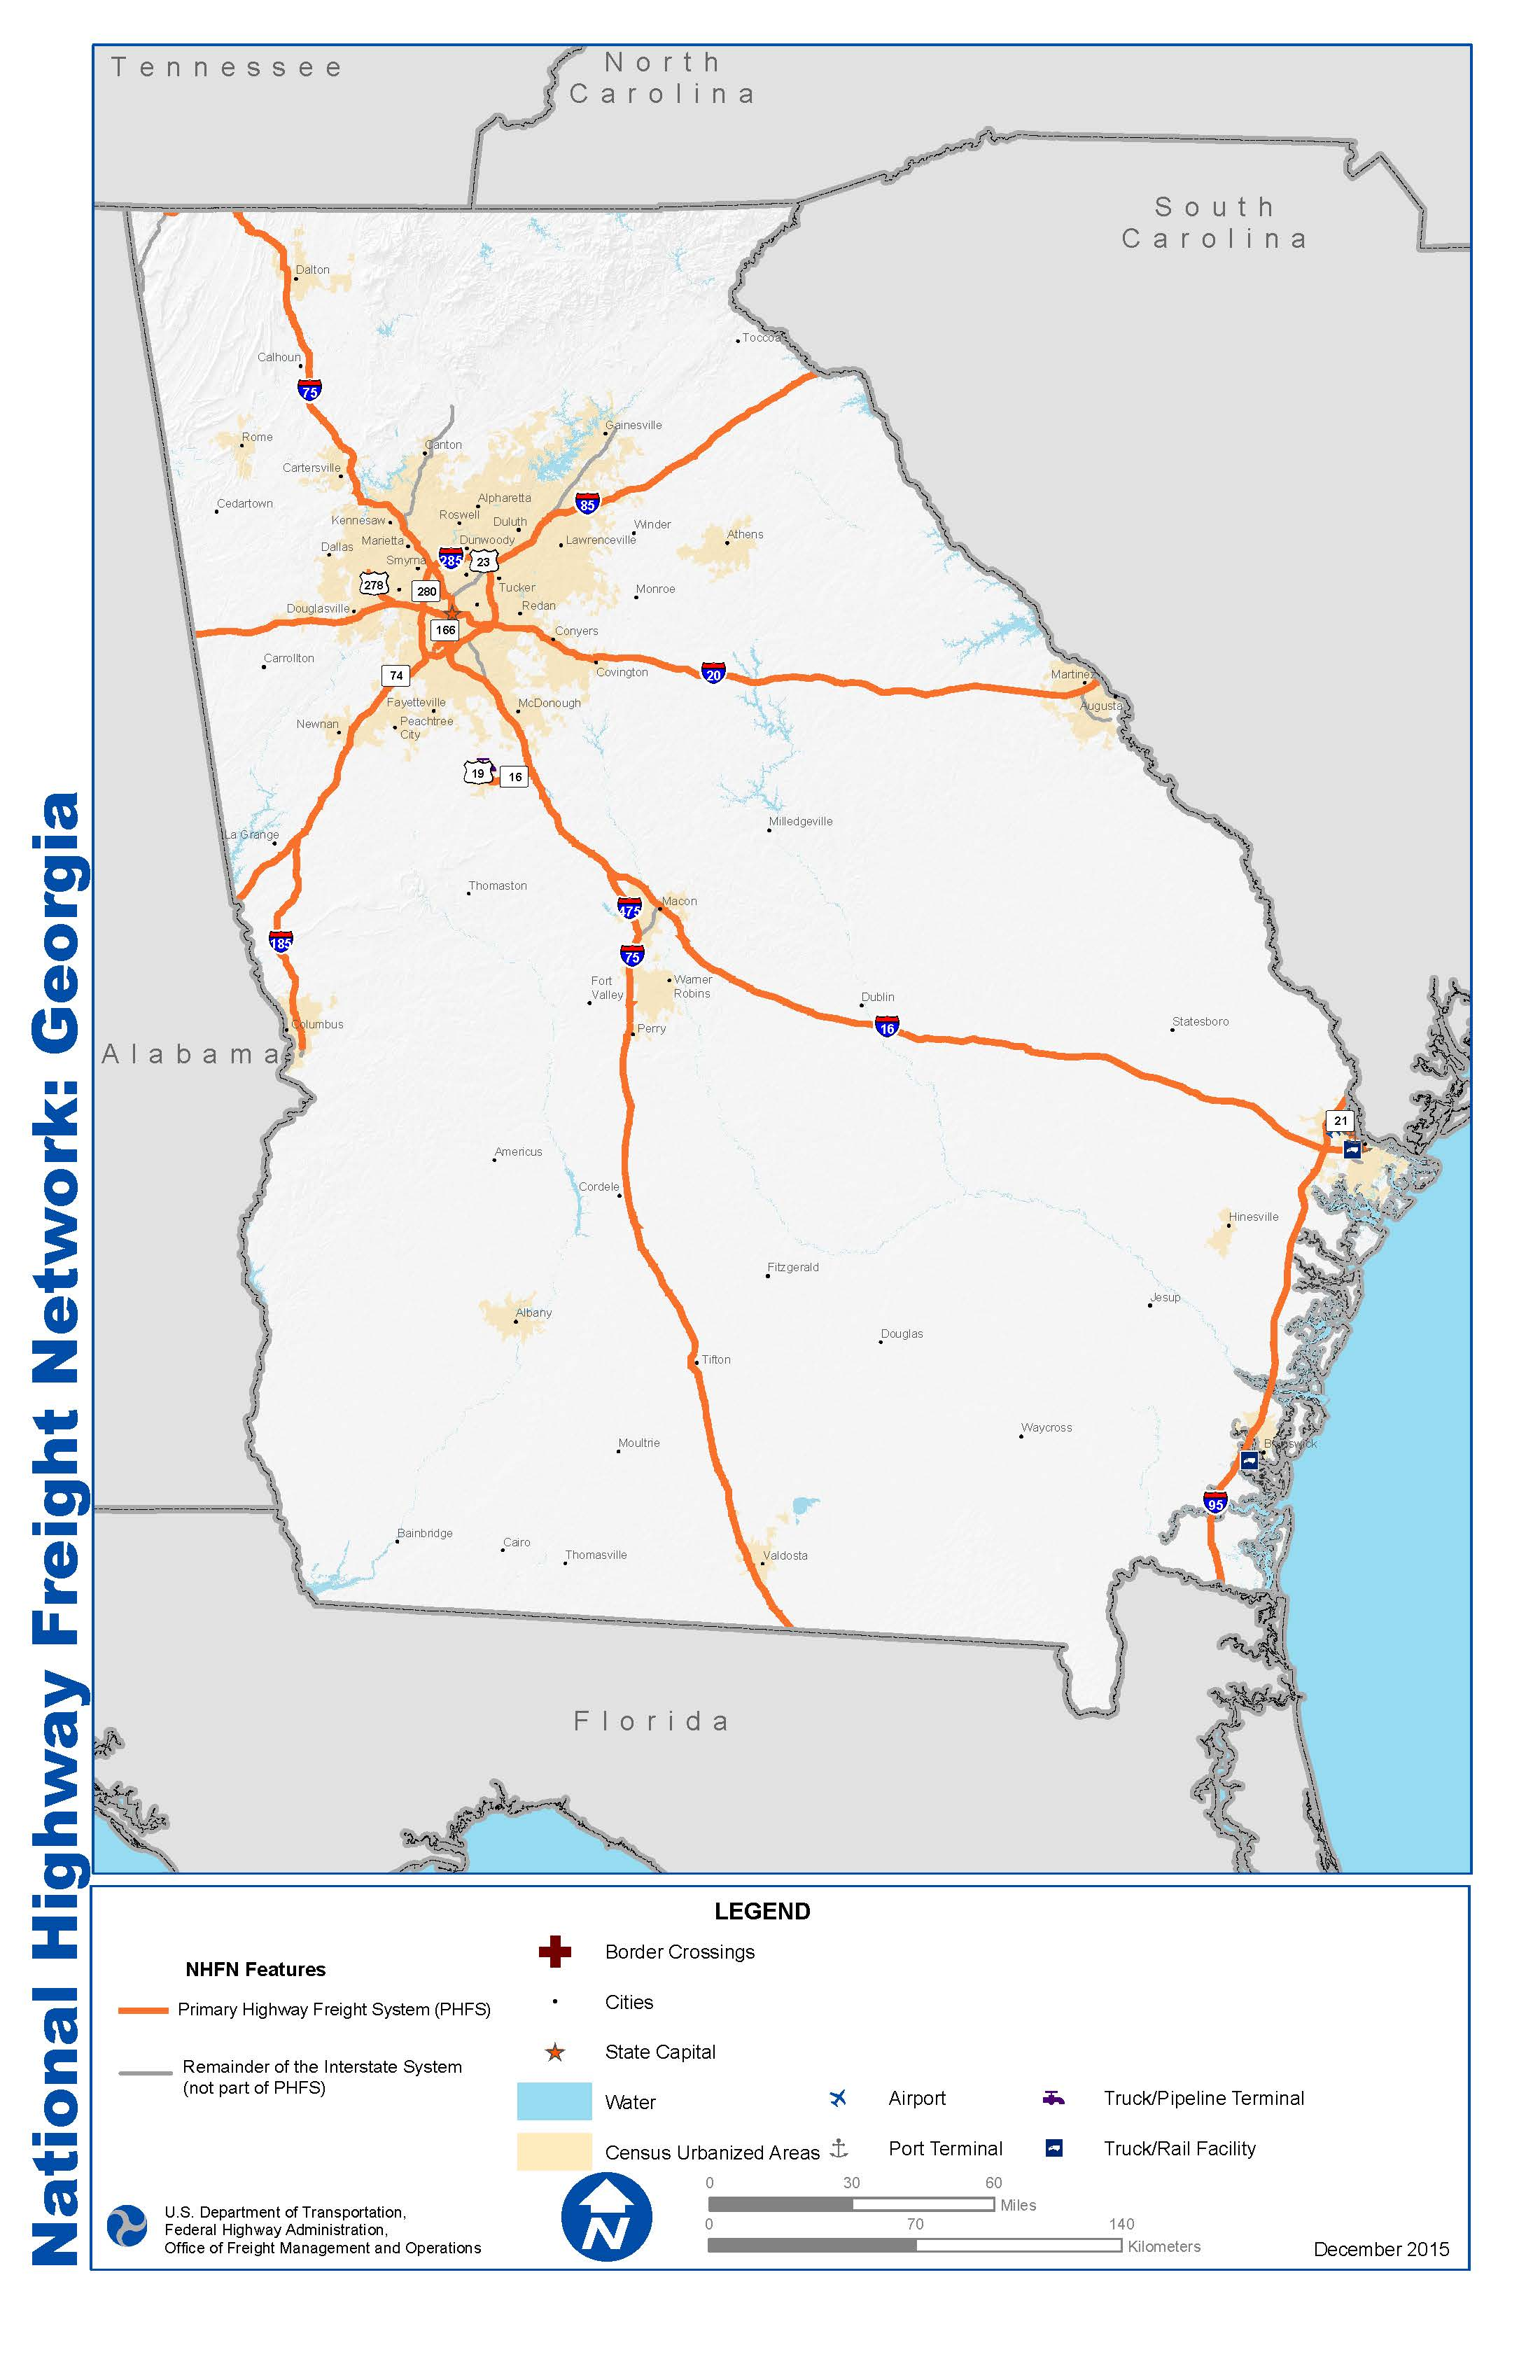 National Highway Freight Network Map And Tables For Georgia FHWA - Georgia highway map